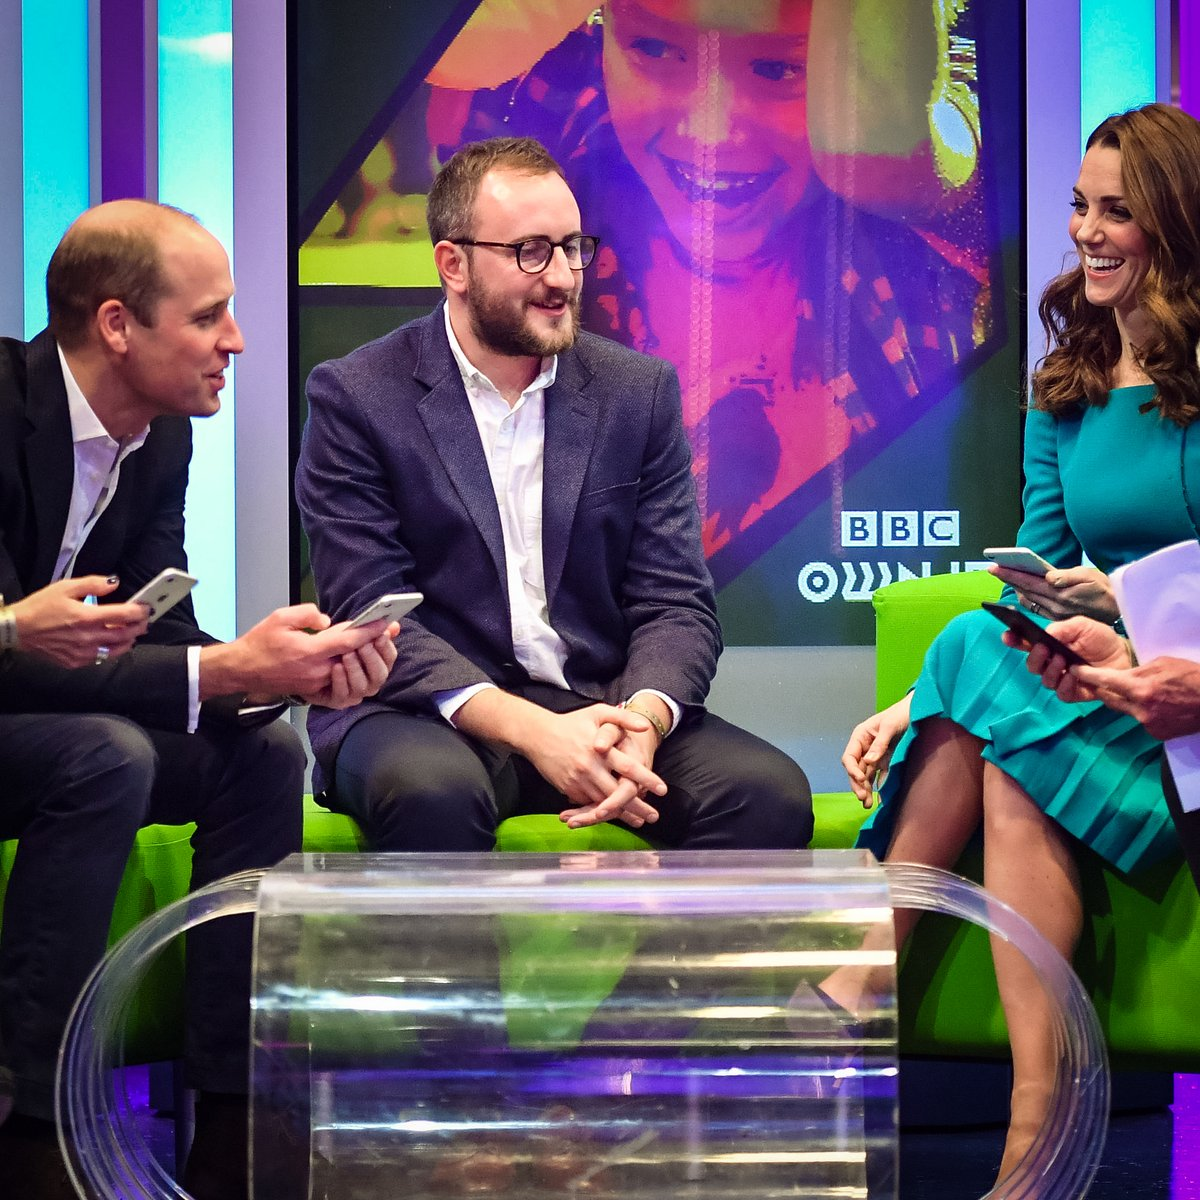 The #BBCOwnIt App has launched 📱helping young people experience the positives of being online. Find out more 👉 bbc.com/ownit